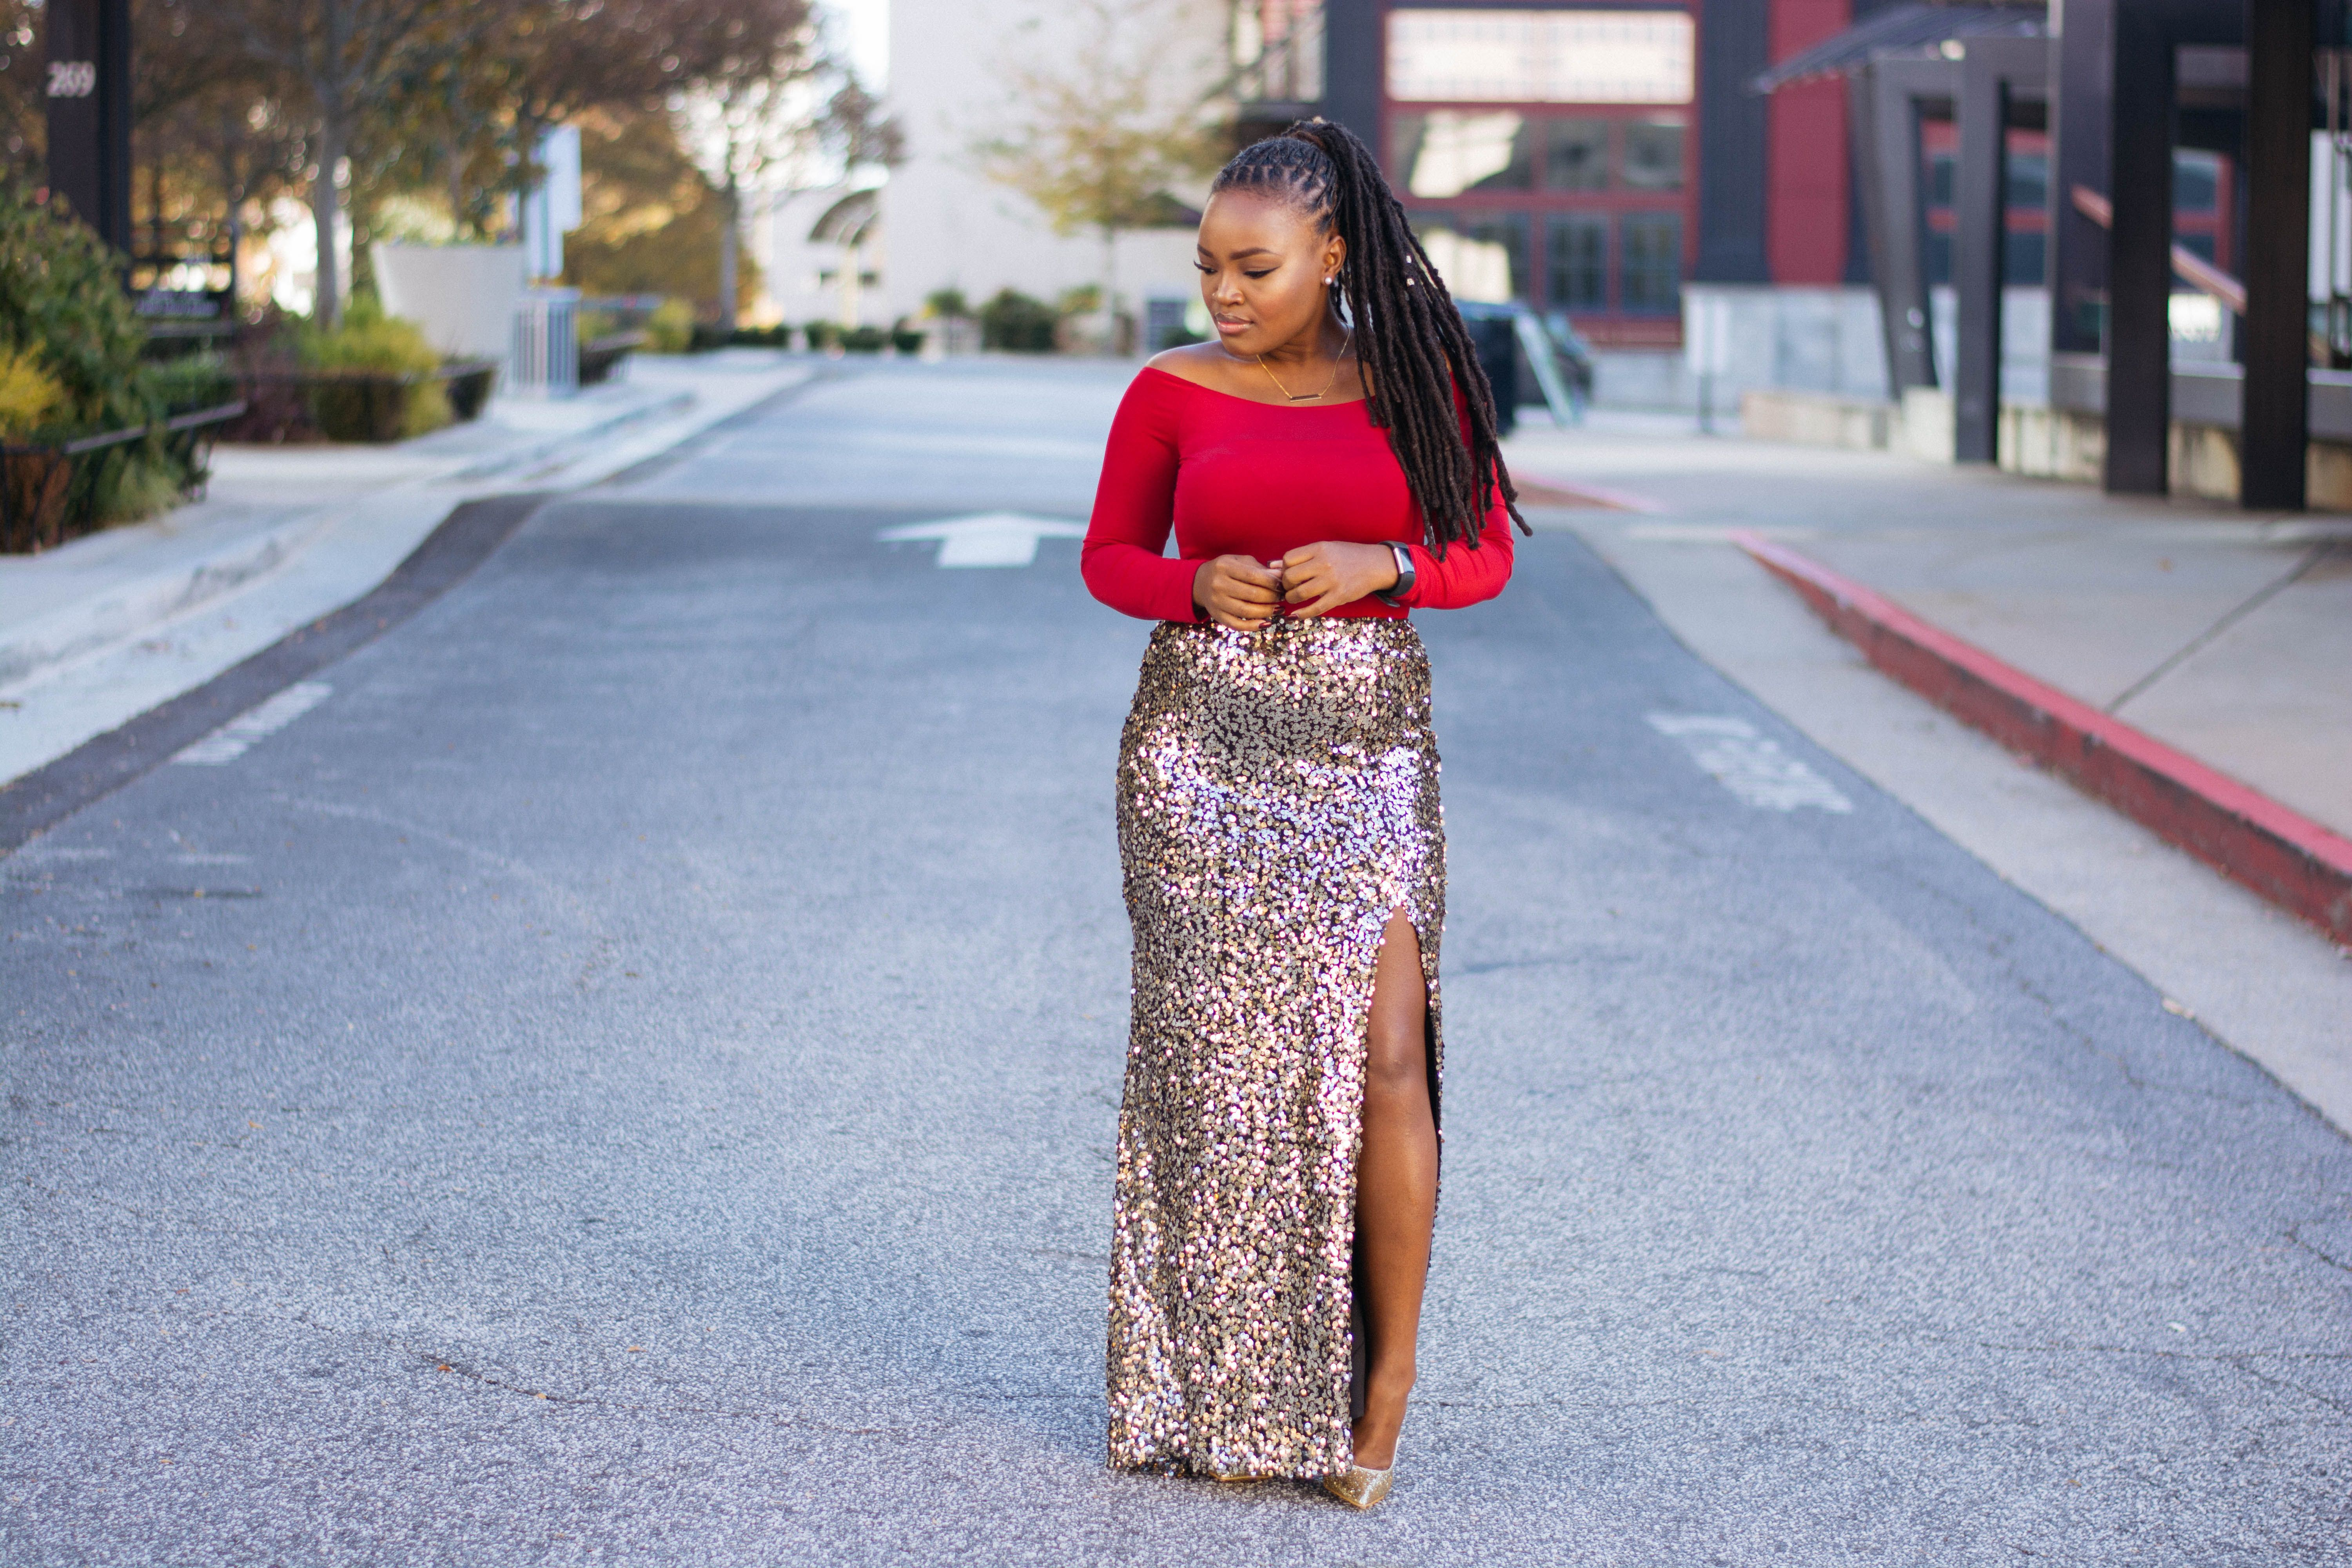 849fb3d01 OFF THE SHOULDER RED BODYSUIT X SEQUIN MAXI SKIRT | Style ...